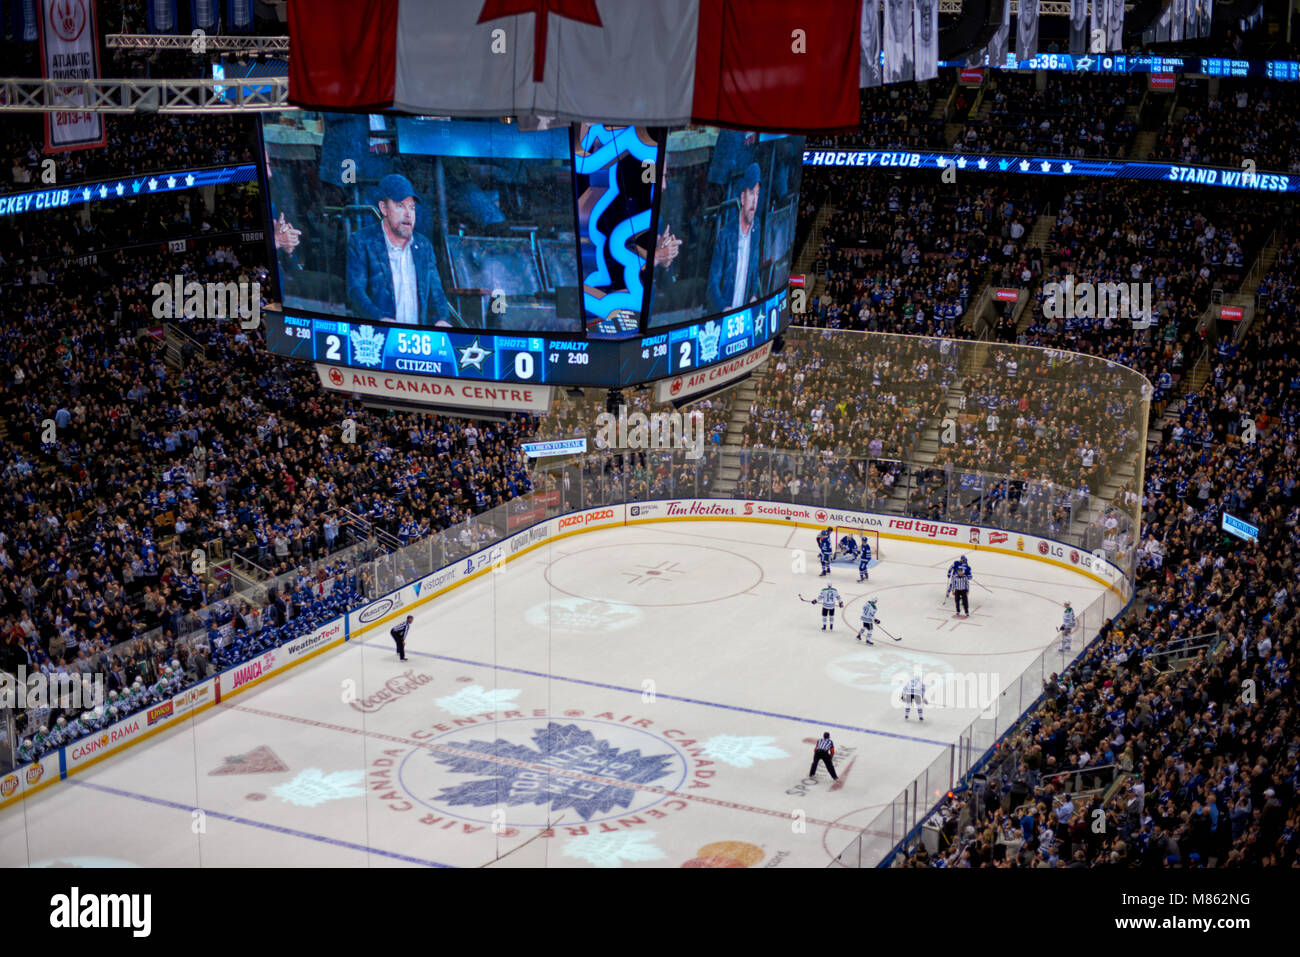 Toronto Maple Leafs Stock Photos   Toronto Maple Leafs Stock Images ... cd59028a4